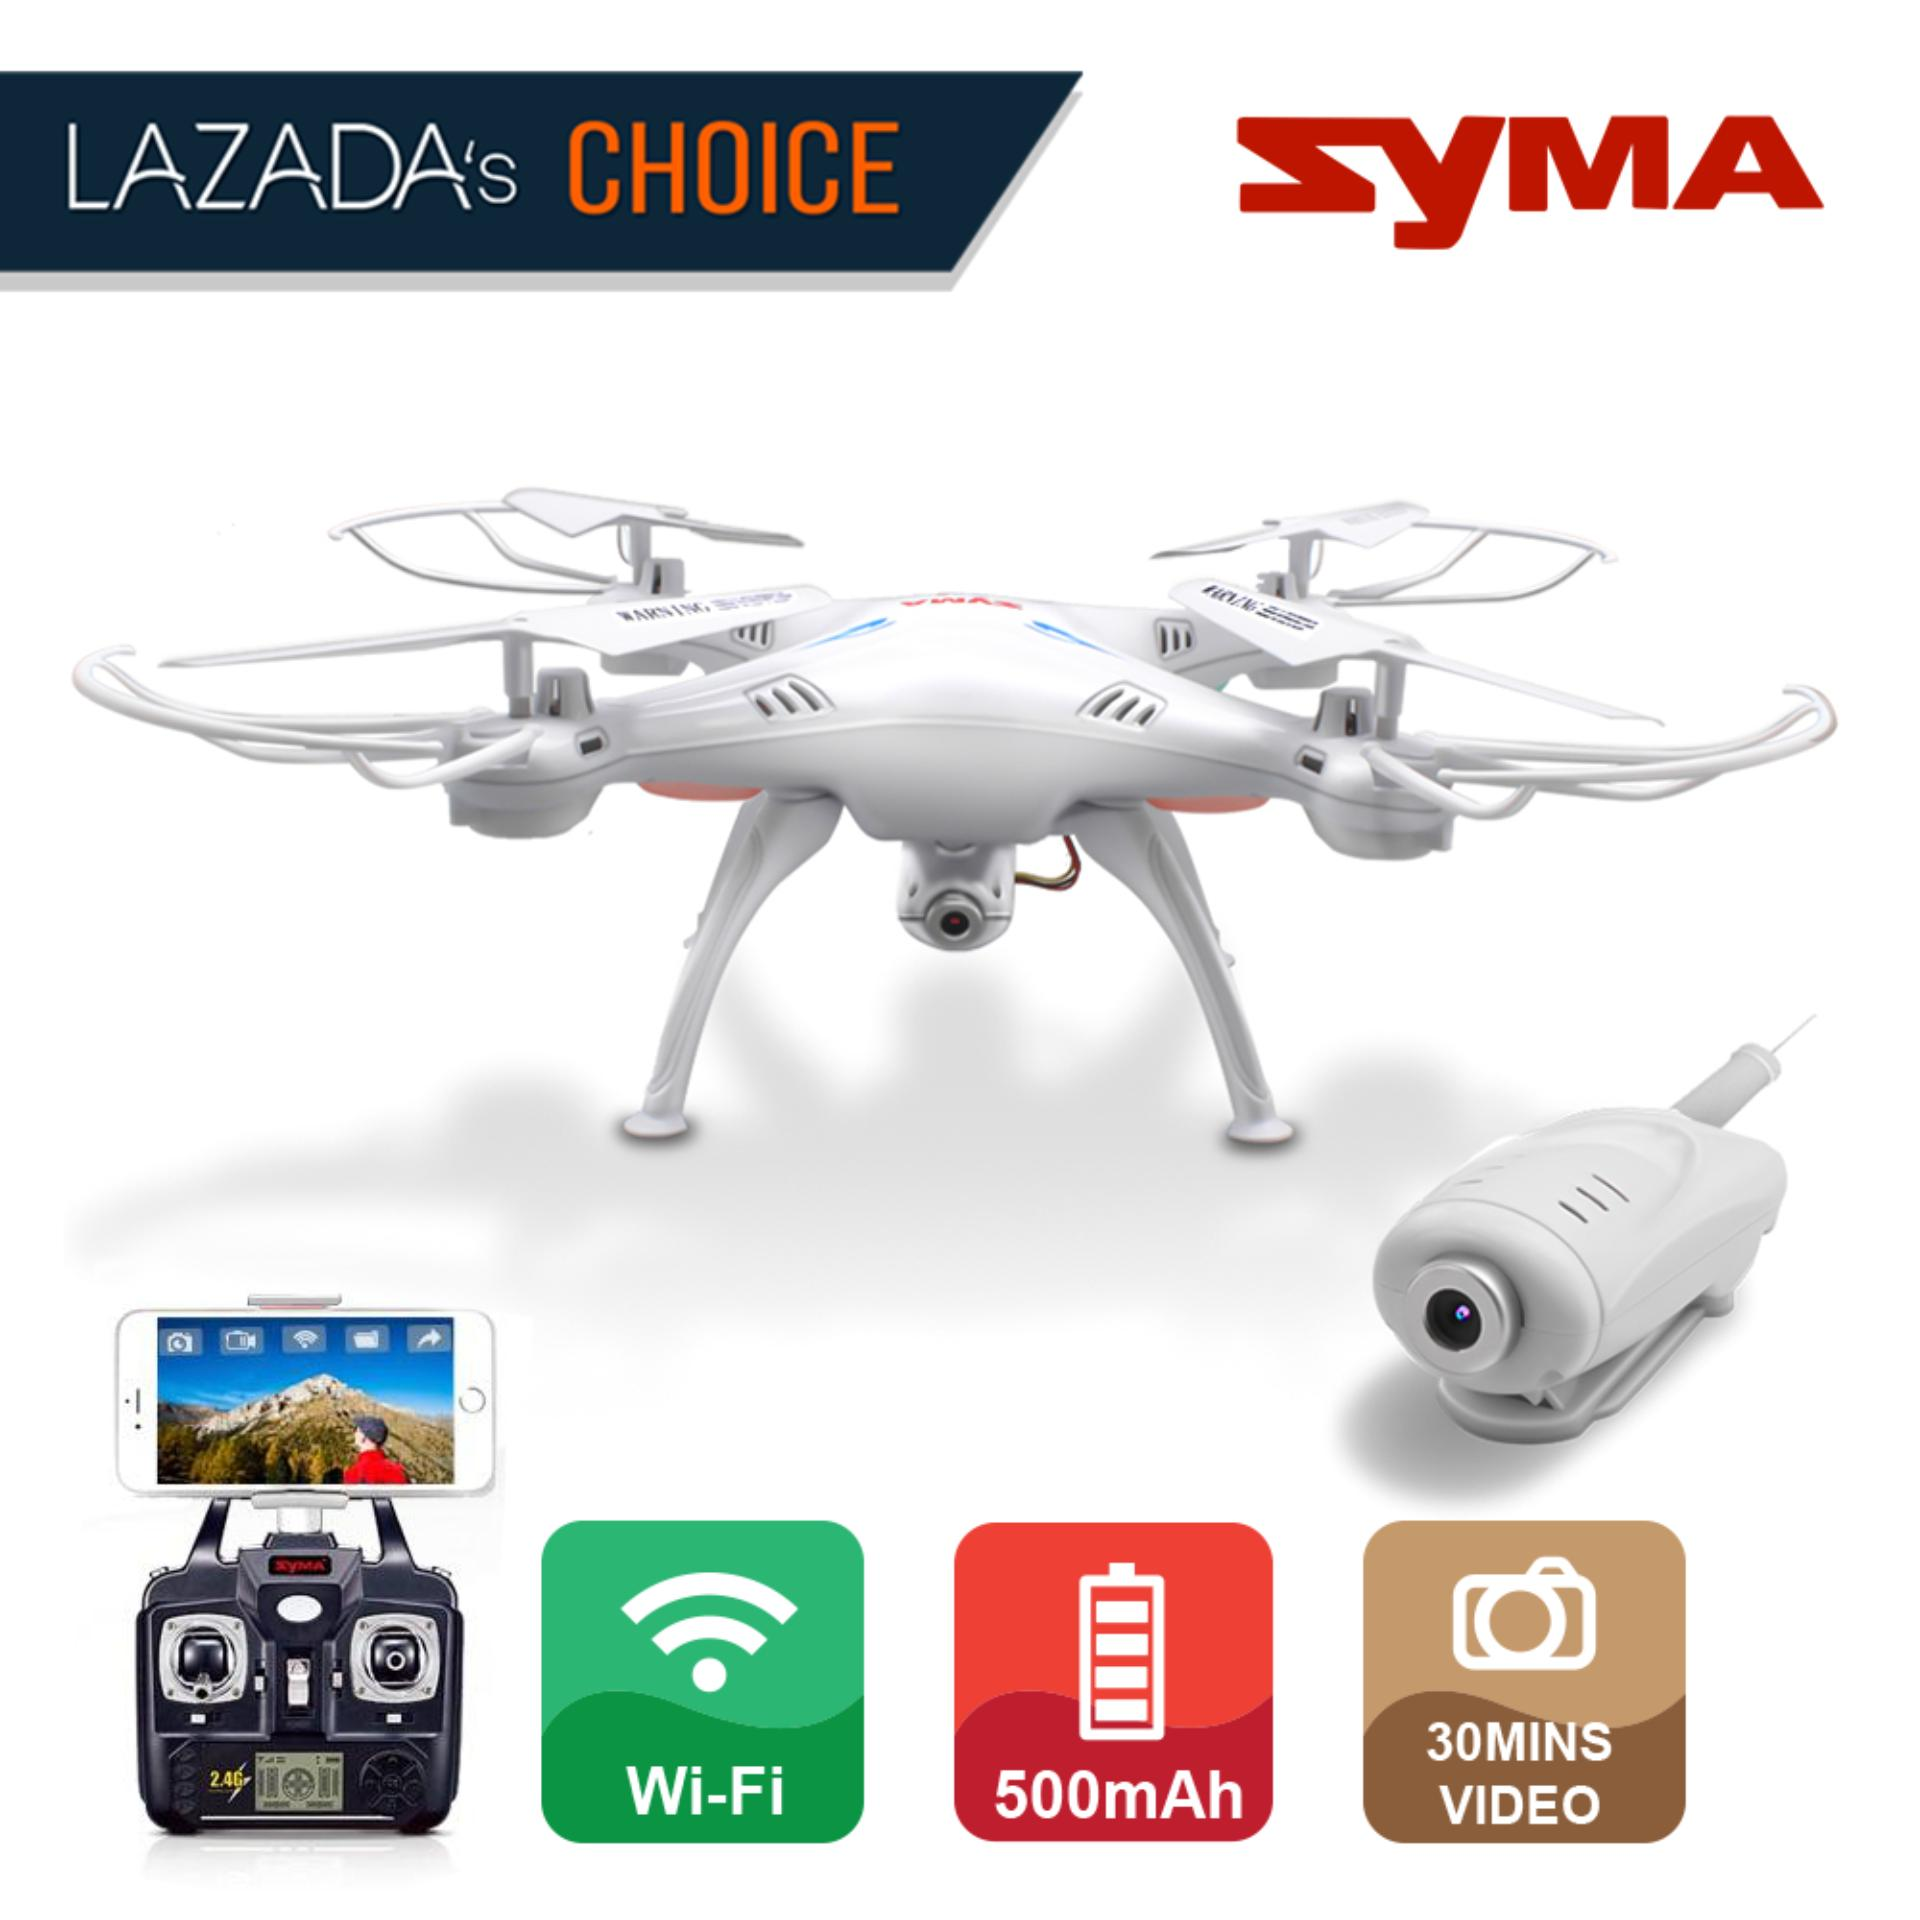 Syma Philippines Price List Rc Quadcopter For Sale Lazada Foldable Frame Kit With Parallel Circuit Board Pcb Mini 280 X5sw Wifi Fpv Real Time 24ghz Drone Uav Rtf Ufo